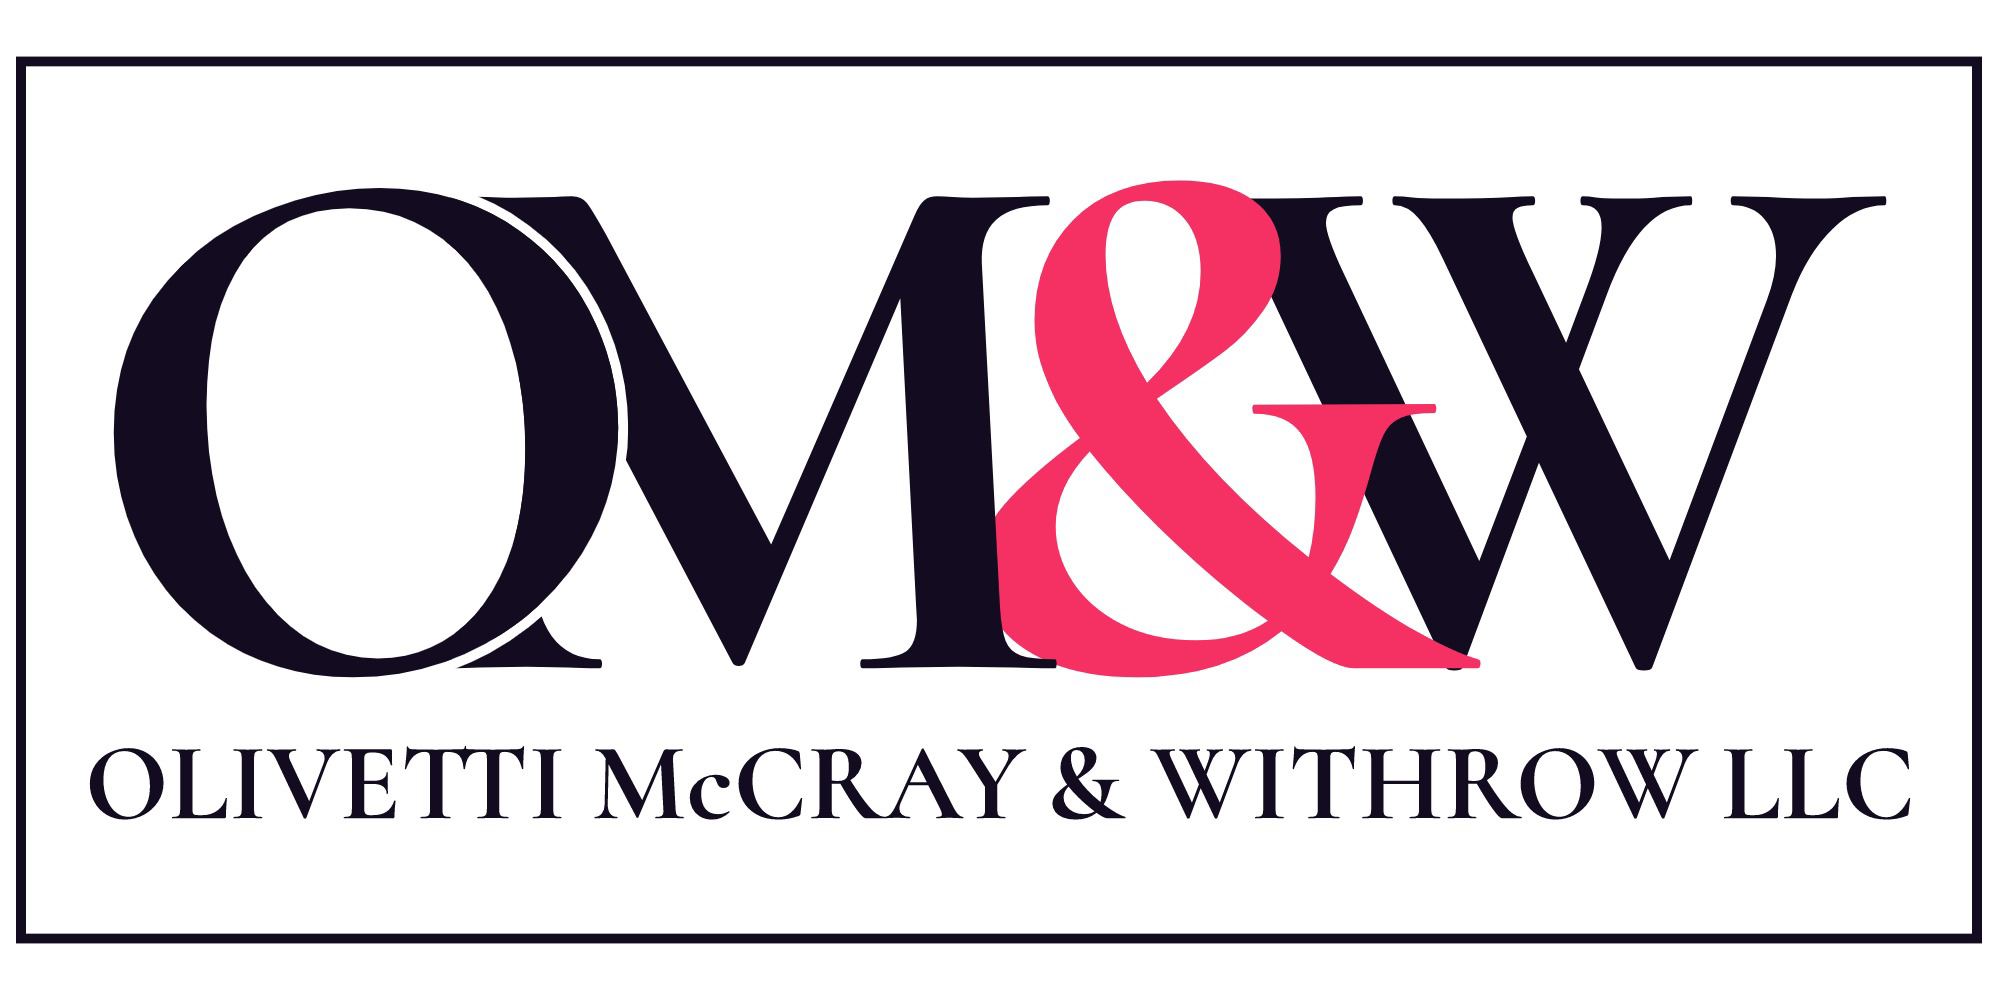 A. Olivetti, McCray & Withrow, LLC